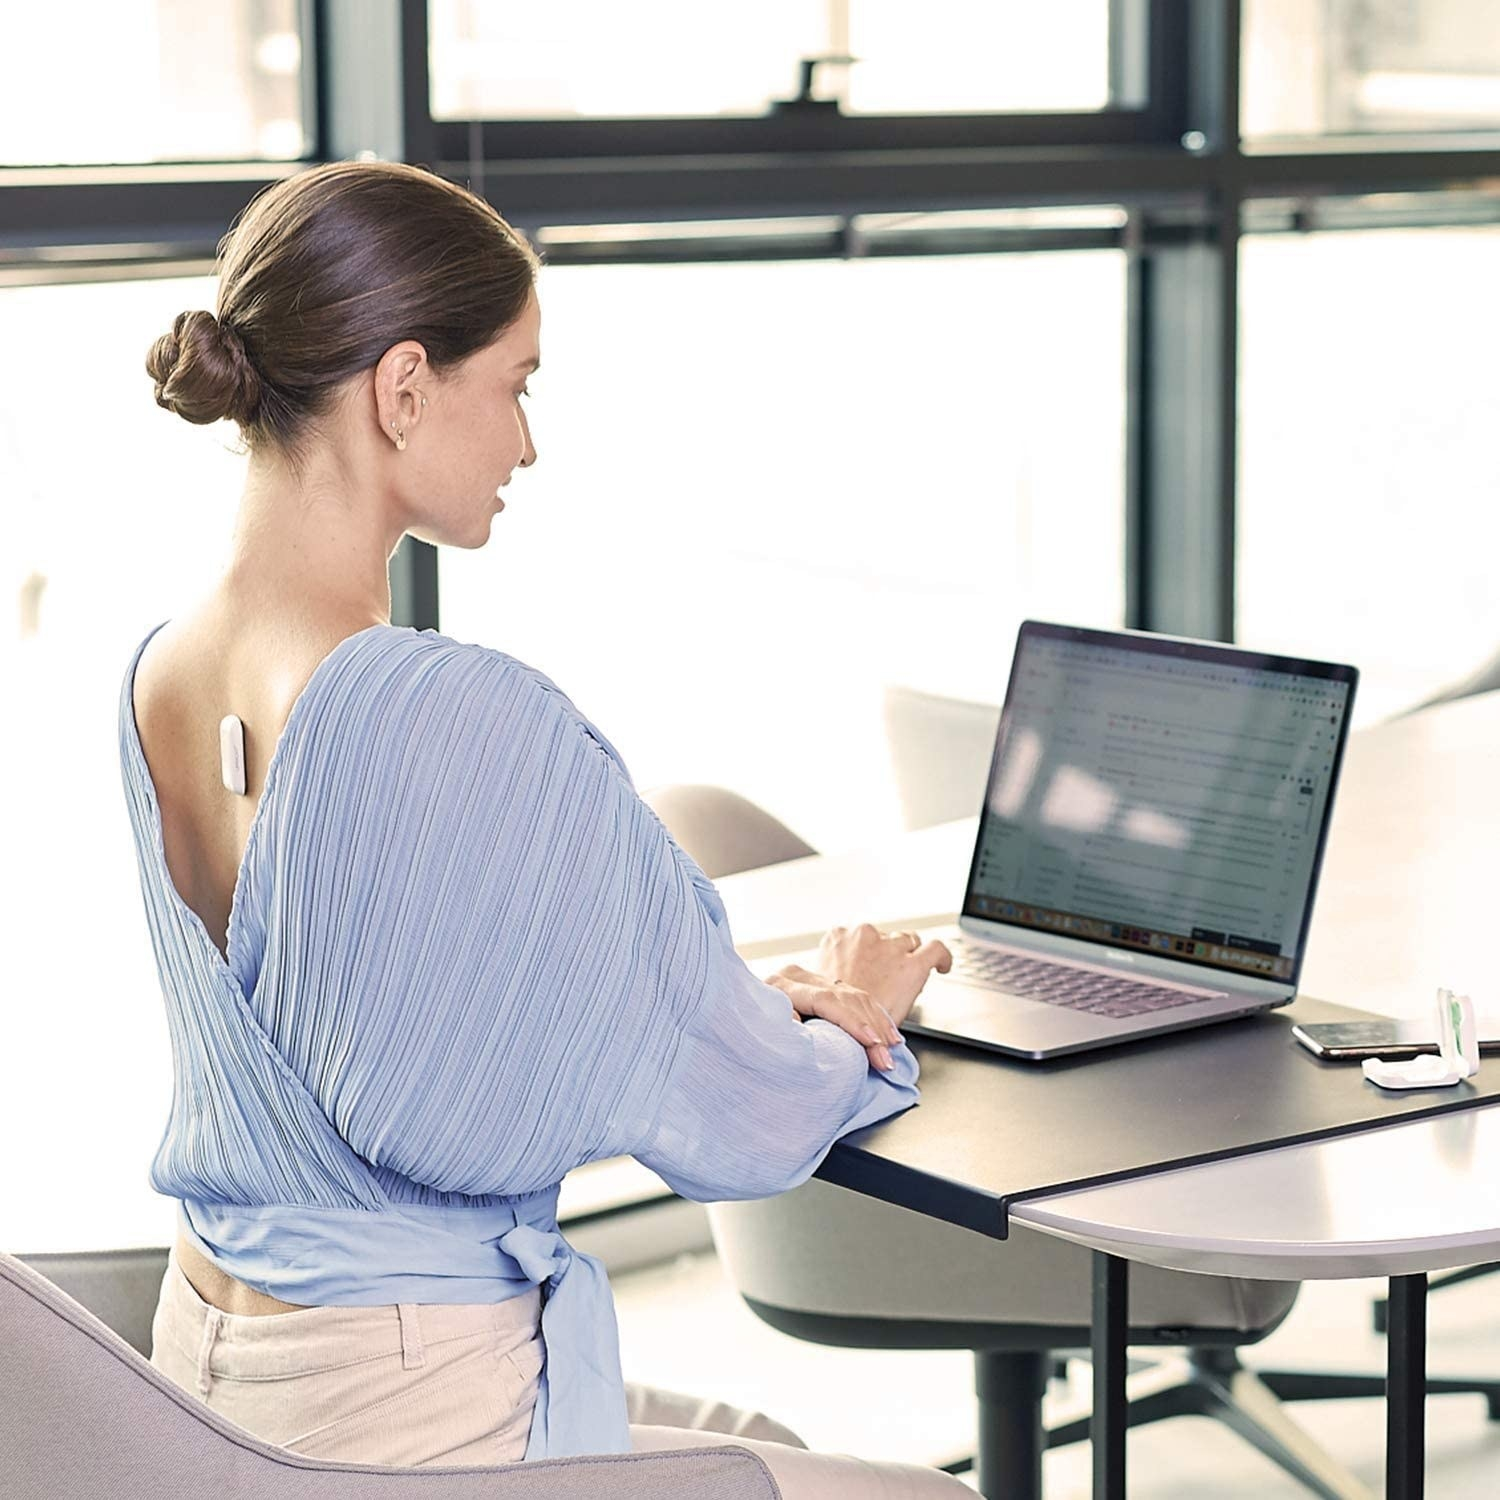 model wearing the white posture corrector directly on their back while sitting up straight and typing on a computer